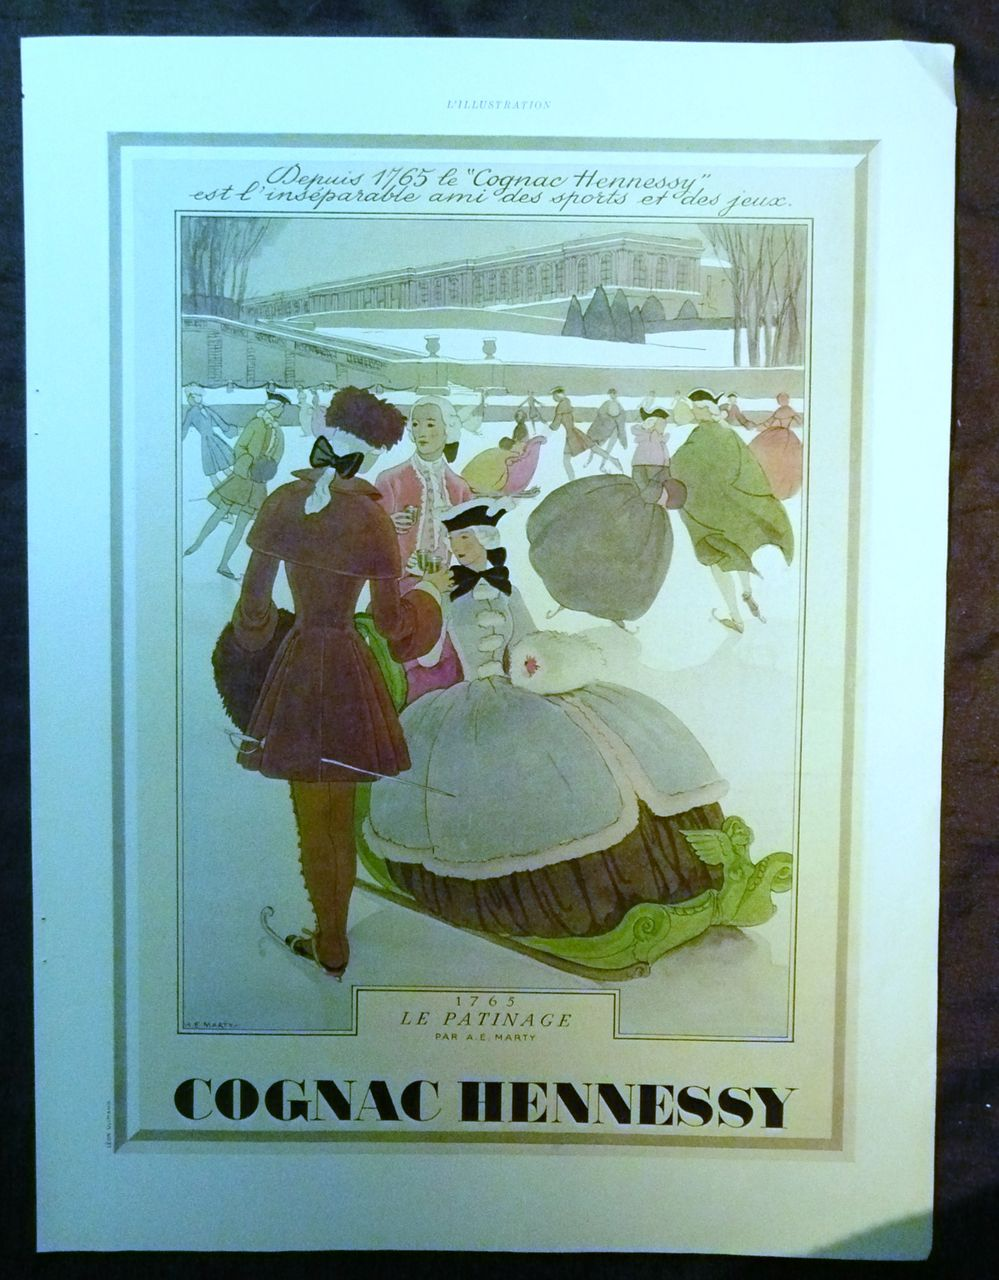 ORIGINAL Cognac HENNESSY Advert  From L ' Illustration French Magazine December 1938